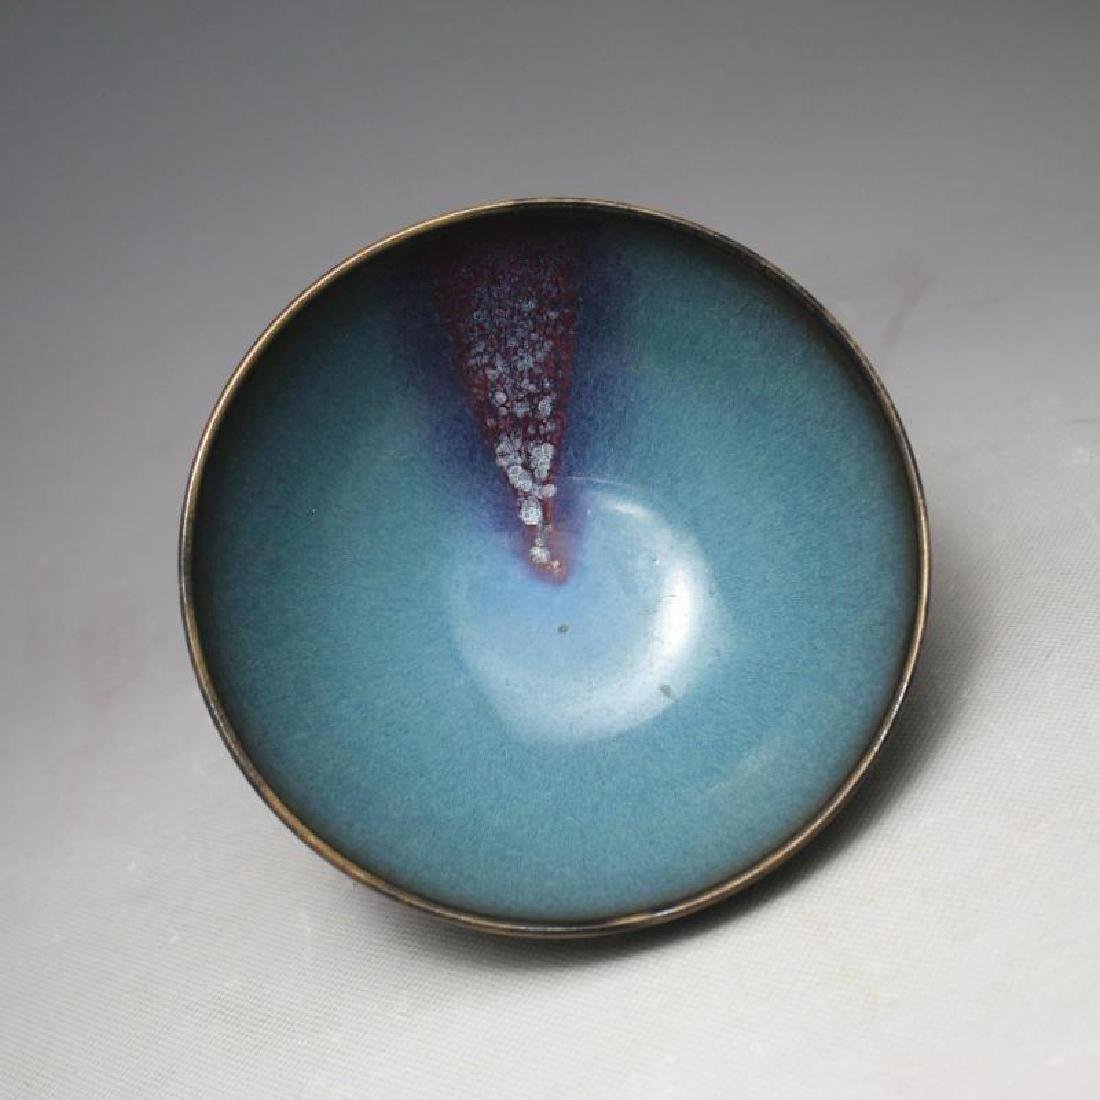 Chinese Song Dynasty Jun Ware Blue Glaze Porcelain Bowl